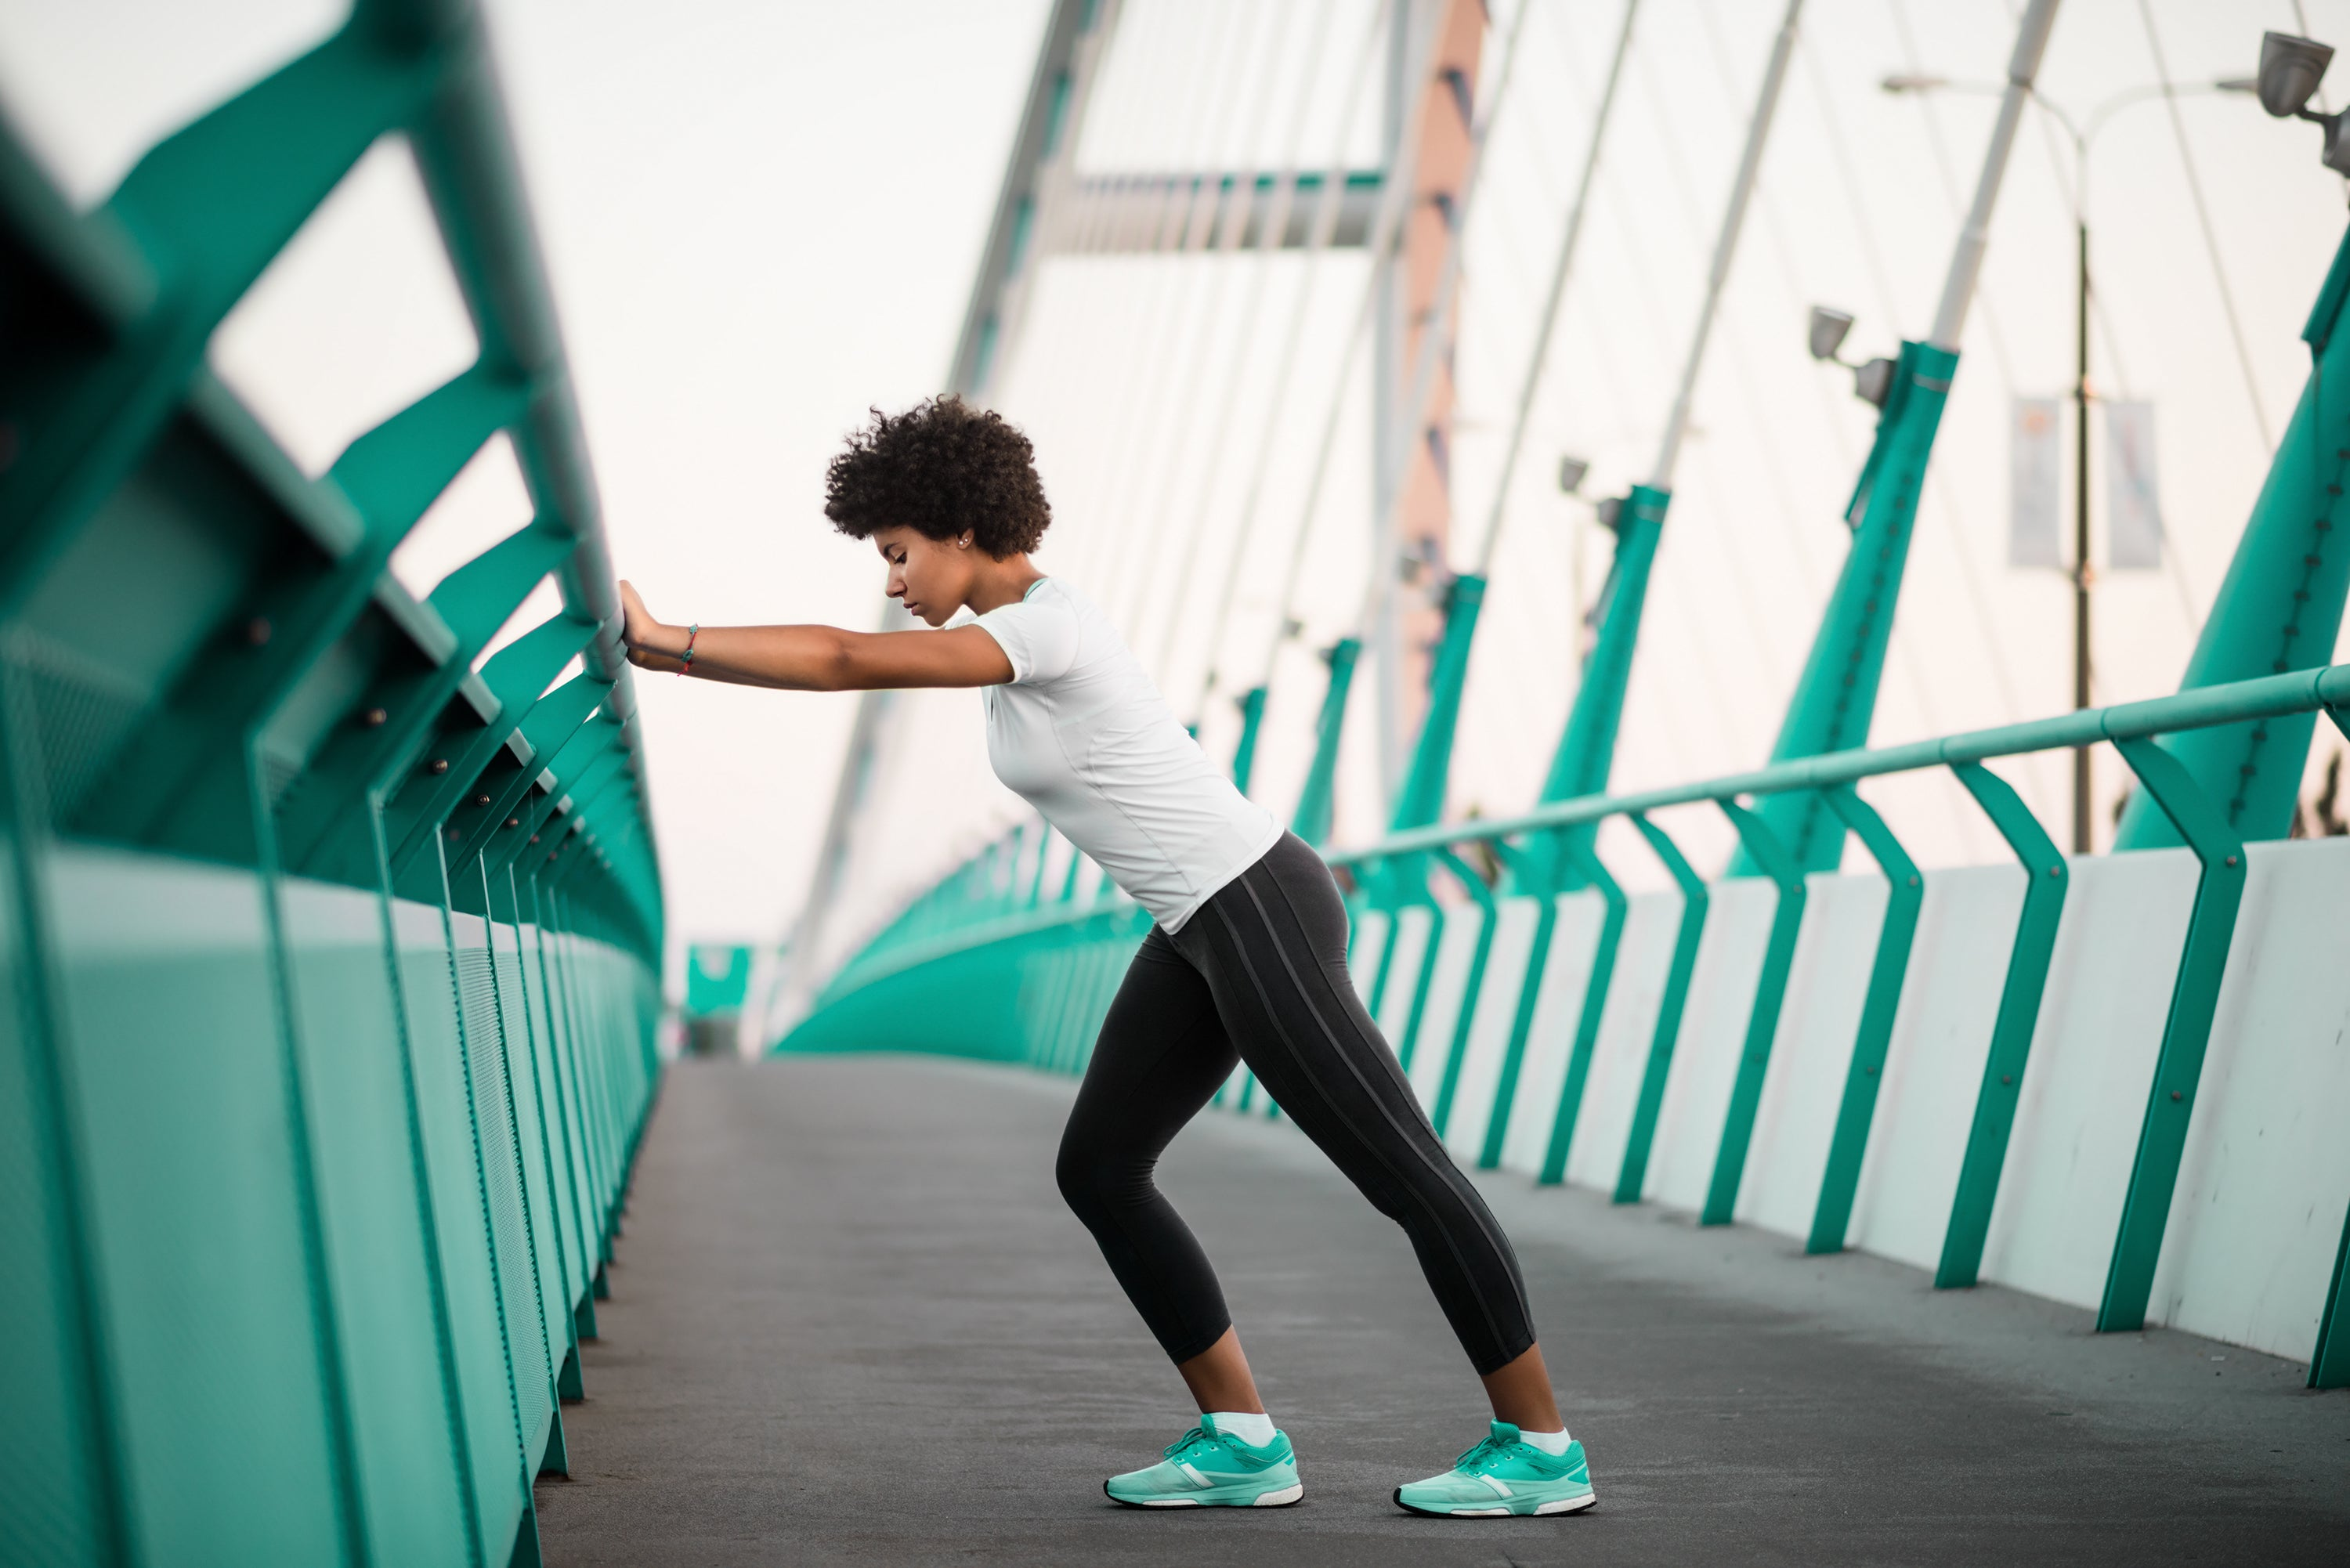 Why Does Lactic Acid Build Up in Muscles? And Why Does It Cause Soreness? -  Scientific American